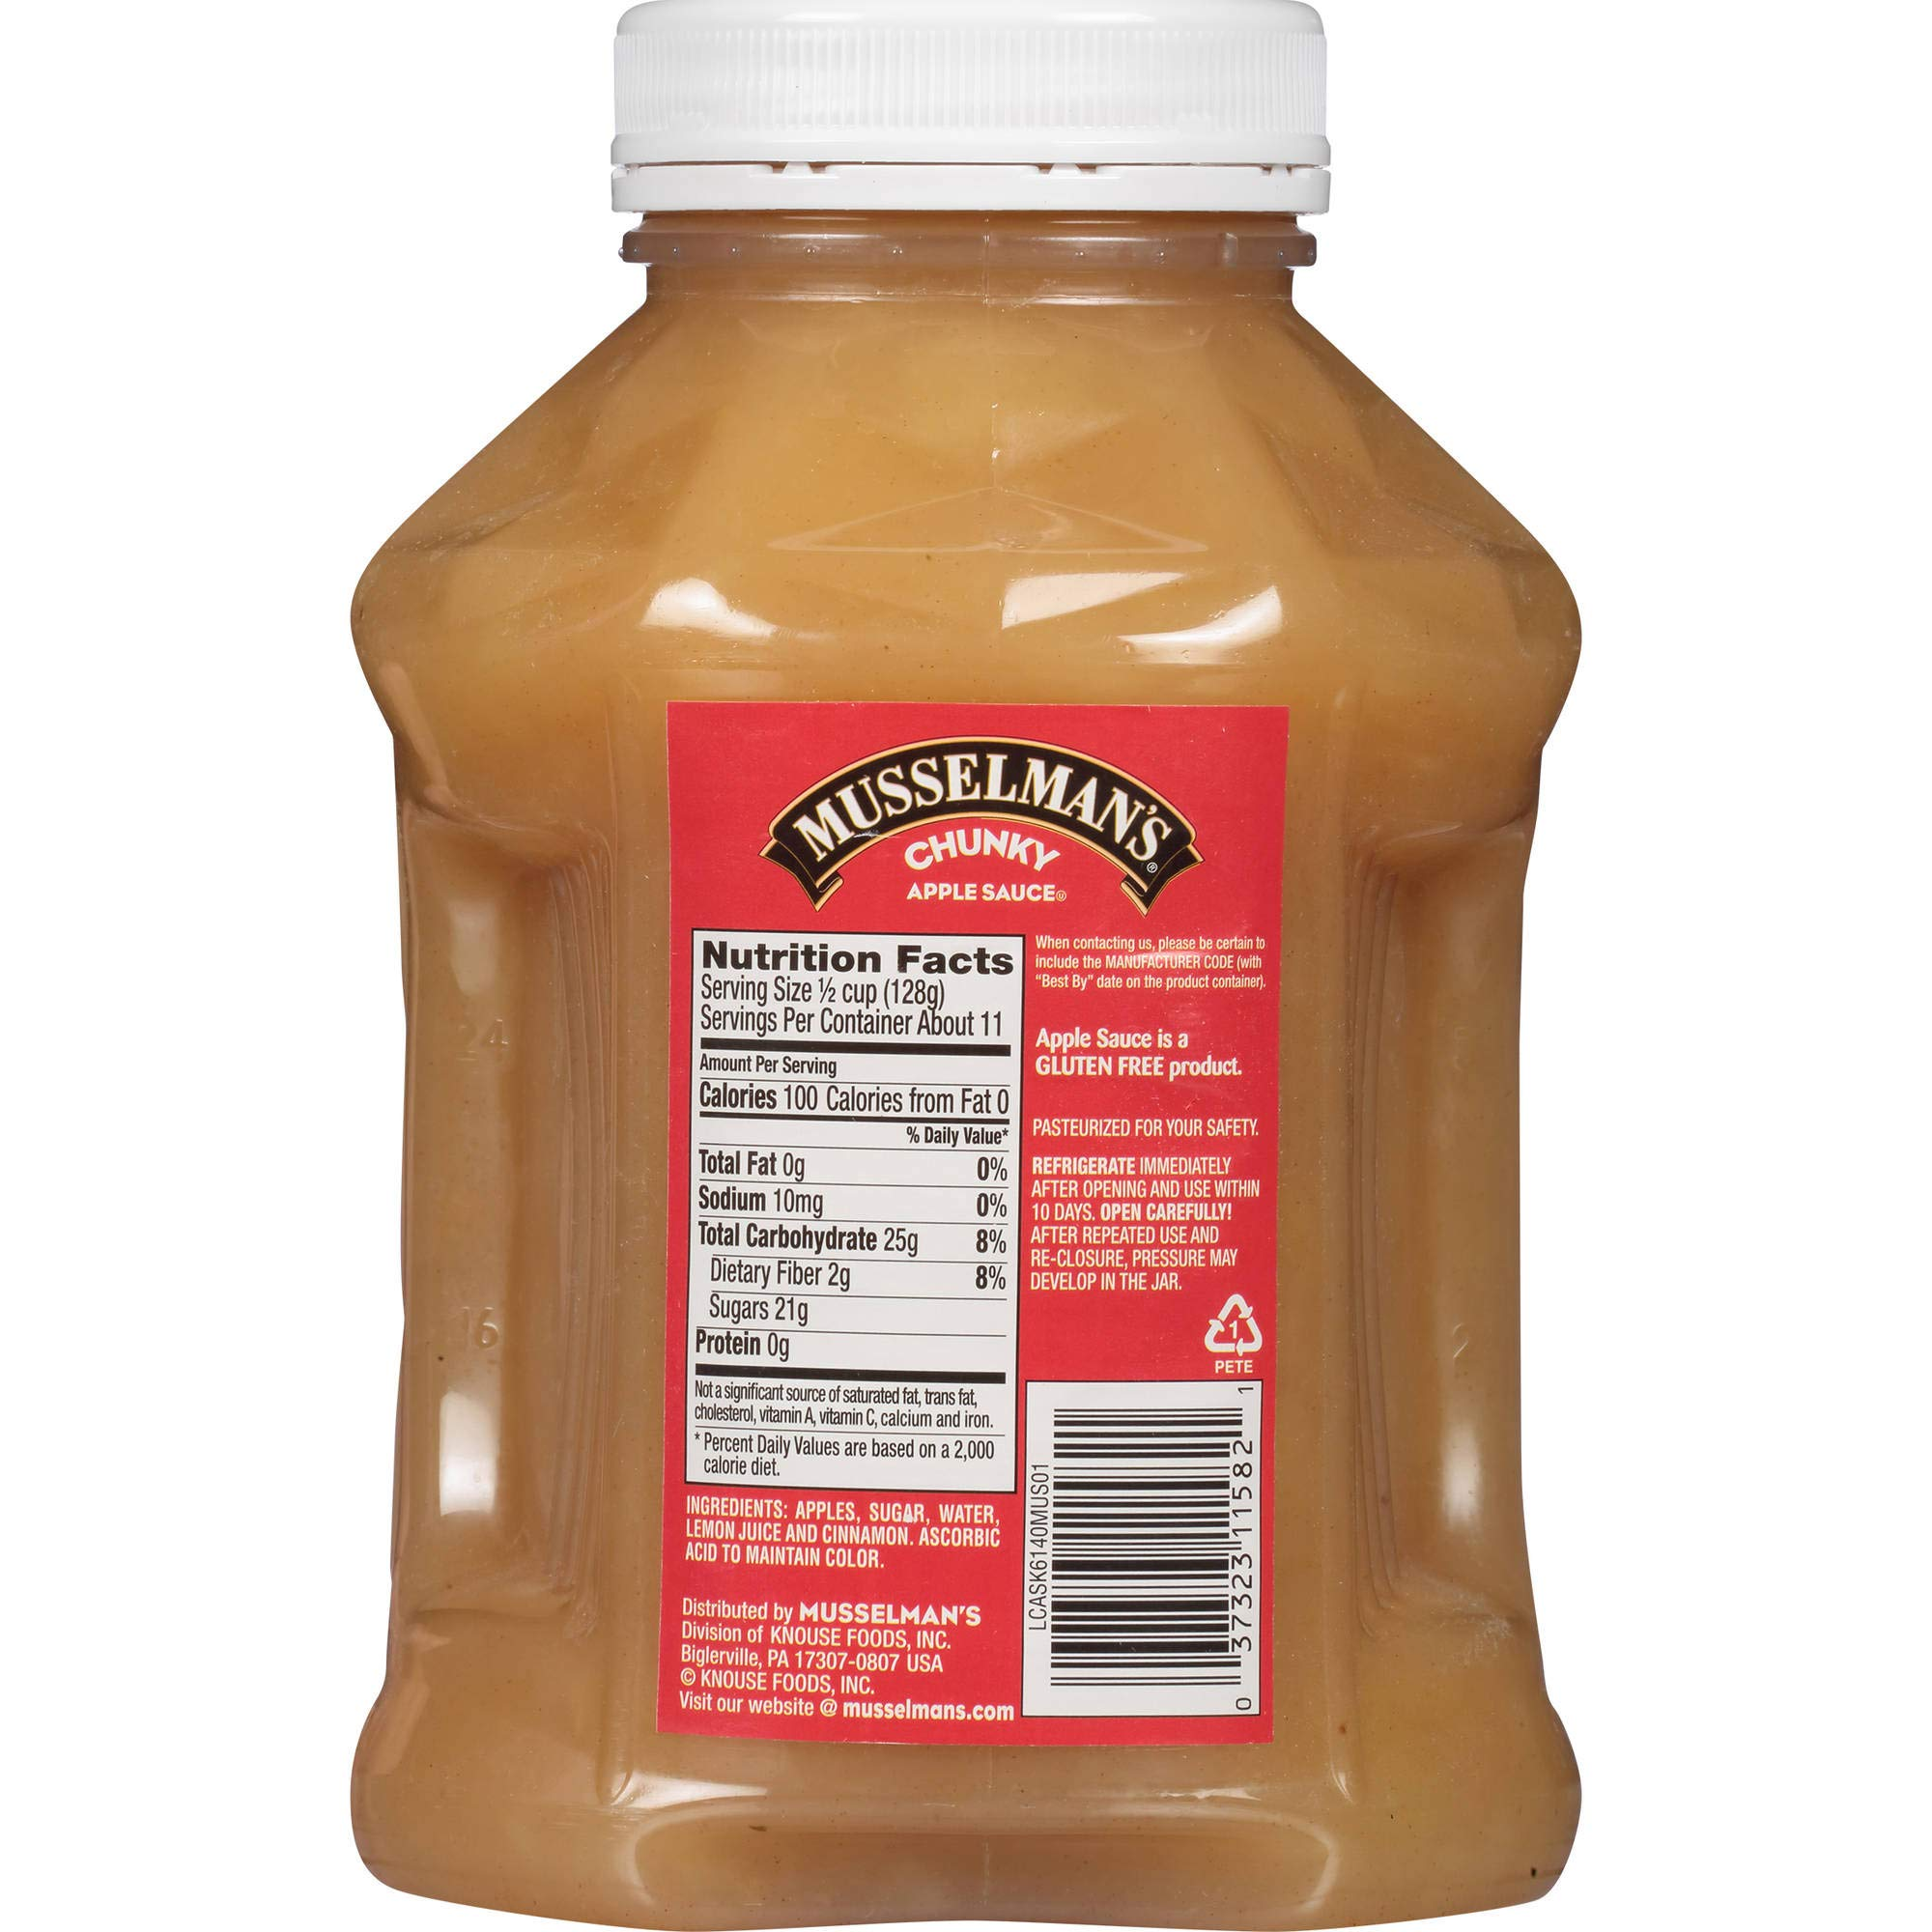 Musselman's Chunky Apple Sauce, 48 Ounce (Pack of 12) by Musselmans (Image #2)